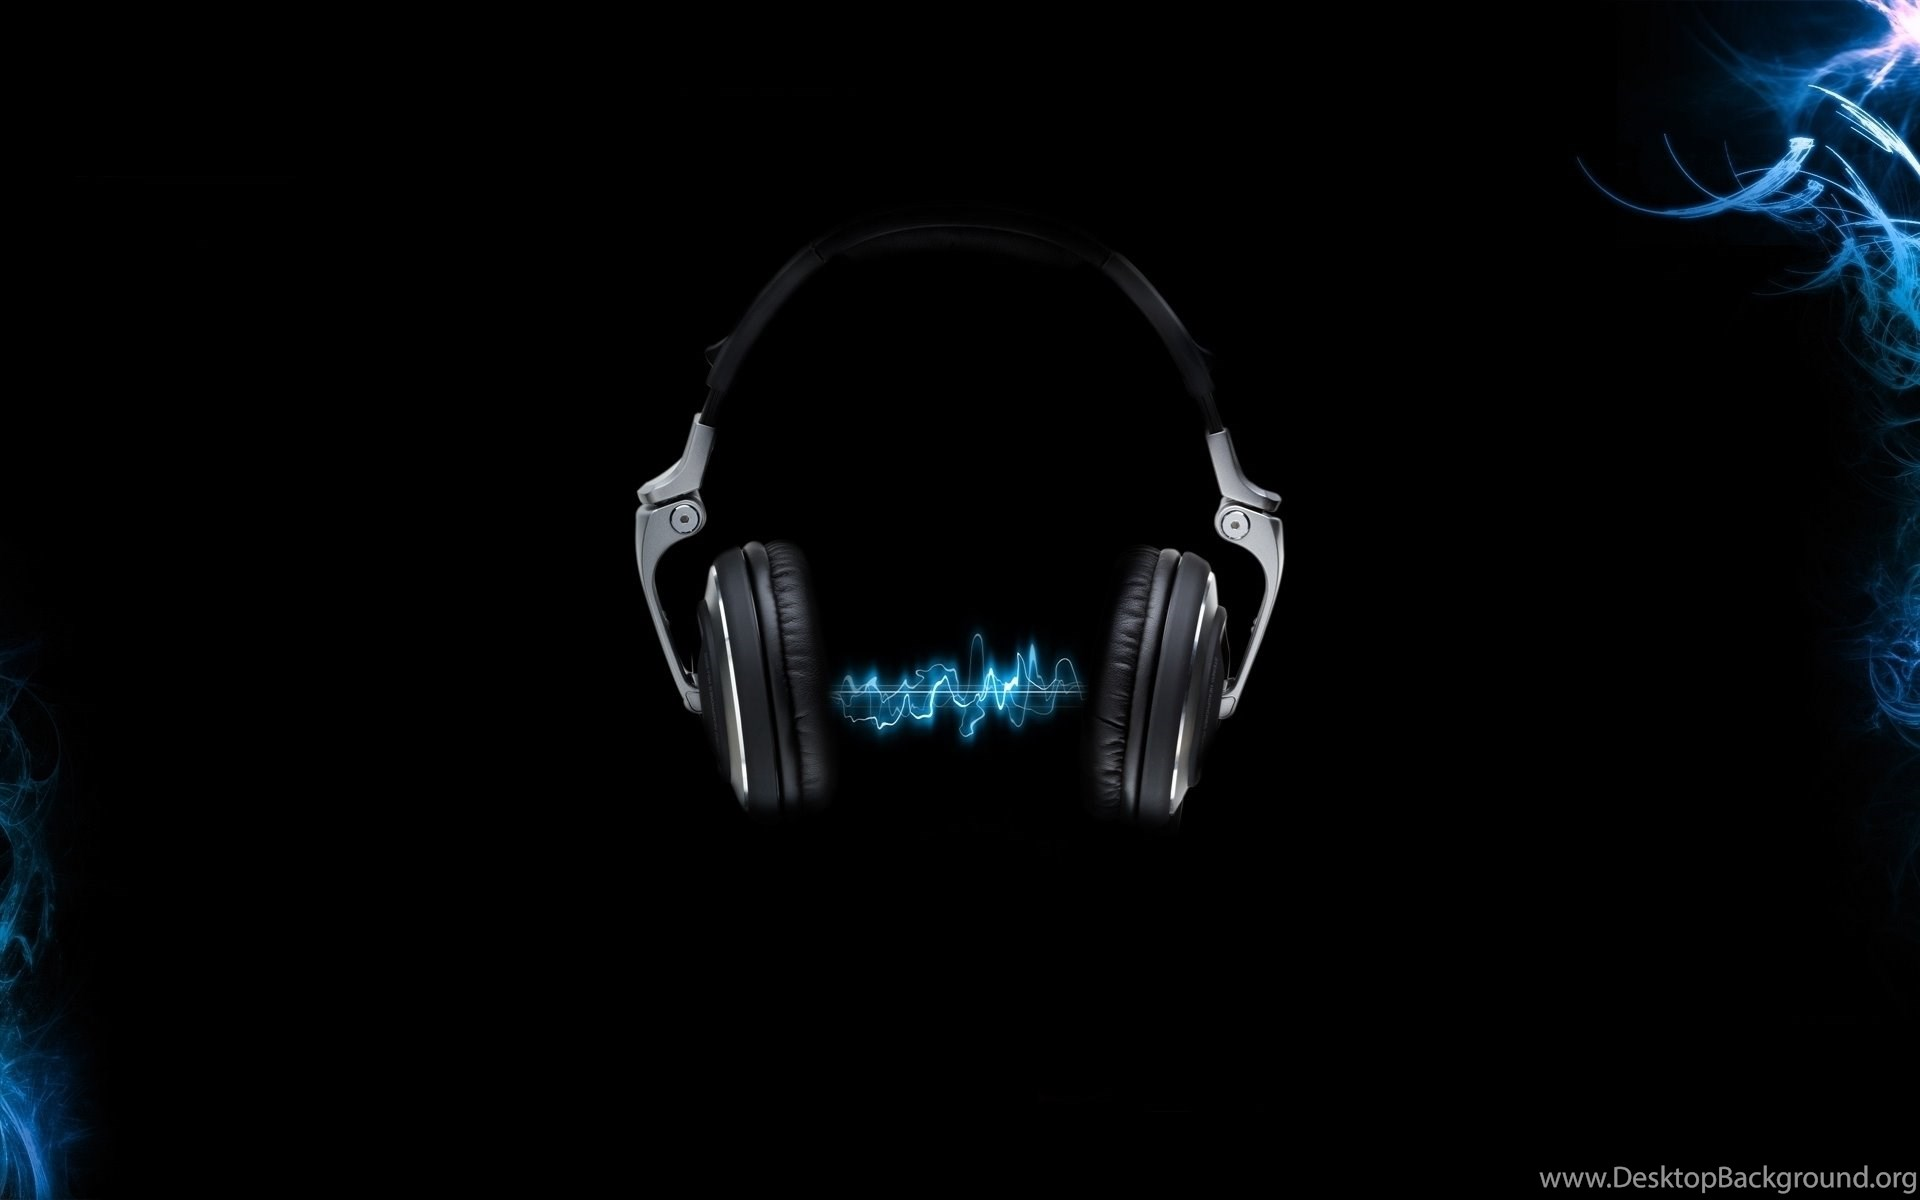 Download The Blue Sound Waves Wallpaper, Blue Sound Waves iPhone